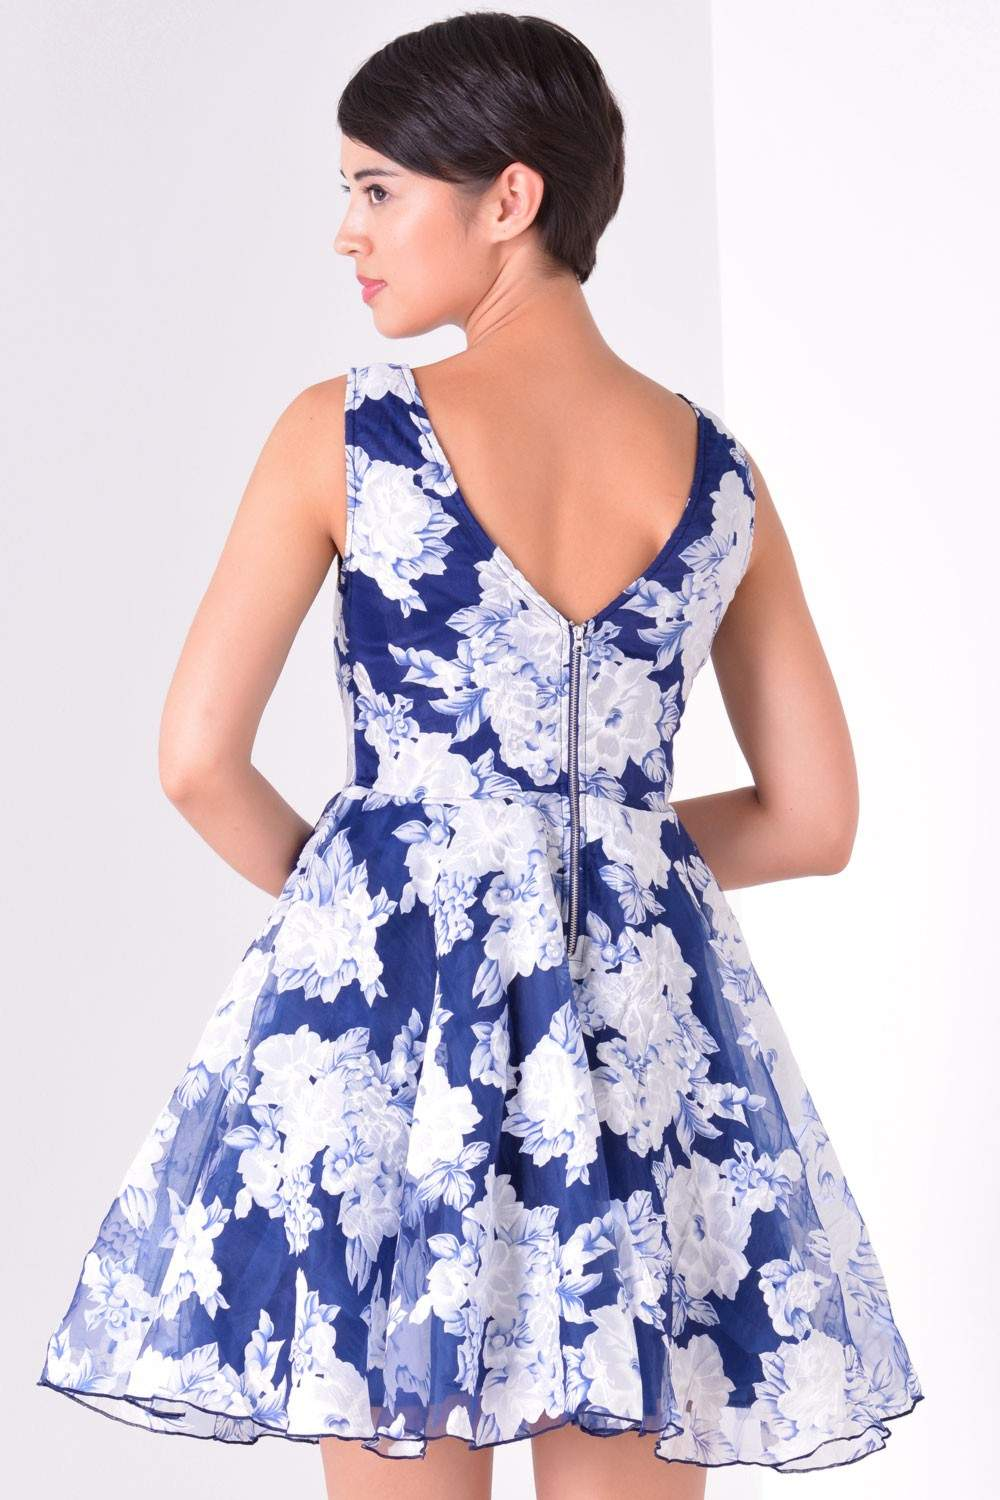 Marc Angelo Estelle Floral Prom Dress in Navy | iCLOTHING